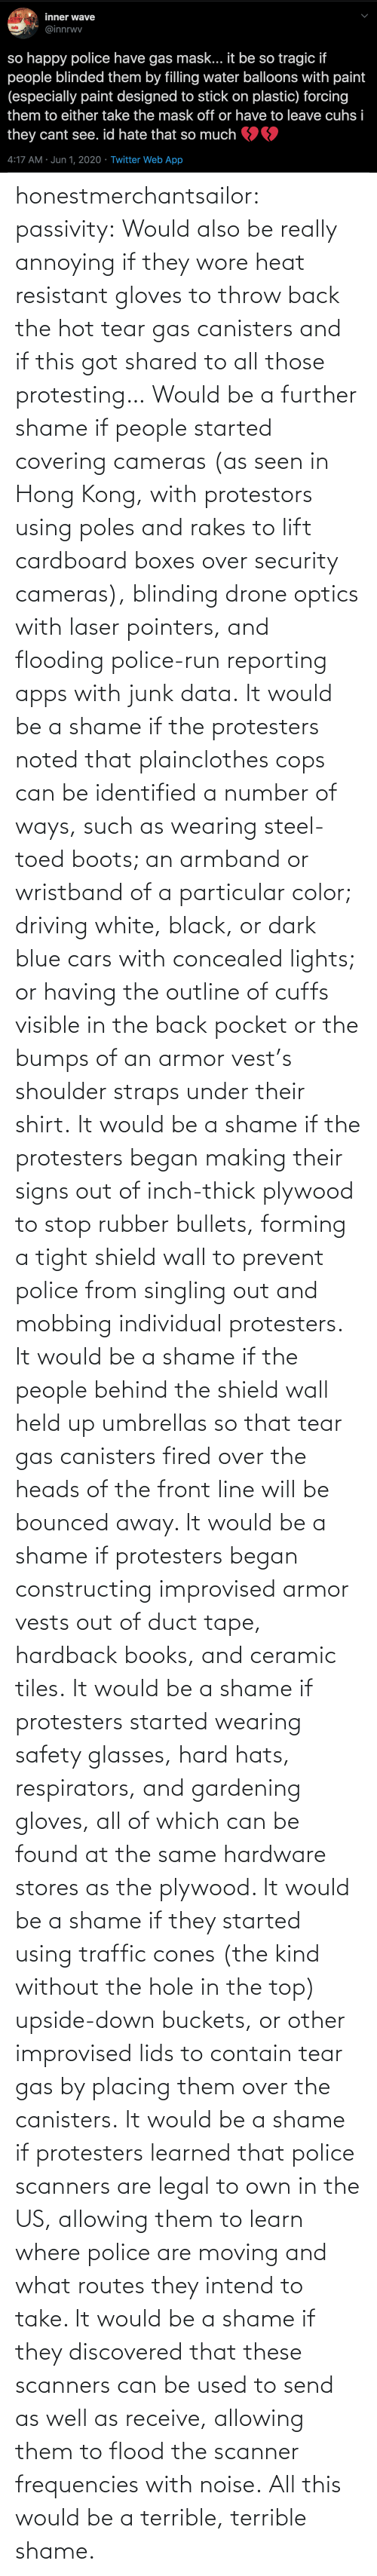 Behind: honestmerchantsailor:  passivity: Would also be really annoying if they wore heat resistant gloves to throw back the hot tear gas canisters and if this got shared to all those protesting… Would be a further shame if people started covering cameras (as seen in Hong Kong, with protestors using poles and rakes to lift cardboard boxes over security cameras), blinding drone optics with laser pointers, and flooding police-run reporting apps with junk data. It would be a shame if the protesters noted that plainclothes cops can be identified a number of ways, such as wearing steel-toed boots; an armband or wristband of a particular color; driving white, black, or dark blue cars with concealed lights; or having the outline of cuffs visible in the back pocket or the bumps of an armor vest's shoulder straps under their shirt. It would be a shame if the protesters began making their signs out of inch-thick plywood to stop rubber bullets, forming a tight shield wall to prevent police from singling out and mobbing individual protesters. It would be a shame if the people behind the shield wall held up umbrellas so that tear gas canisters fired over the heads of the front line will be bounced away. It would be a shame if protesters began constructing improvised armor vests out of duct tape, hardback books, and ceramic tiles. It would be a shame if protesters started wearing safety glasses, hard hats, respirators, and gardening gloves, all of which can be found at the same hardware stores as the plywood. It would be a shame if they started using traffic cones (the kind without the hole in the top) upside-down buckets, or other improvised lids to contain tear gas by placing them over the canisters. It would be a shame if protesters learned that police scanners are legal to own in the US, allowing them to learn where police are moving and what routes they intend to take. It would be a shame if they discovered that these scanners can be used to send as well as receive, allowing them to flood the scanner frequencies with noise. All this would be a terrible, terrible shame.